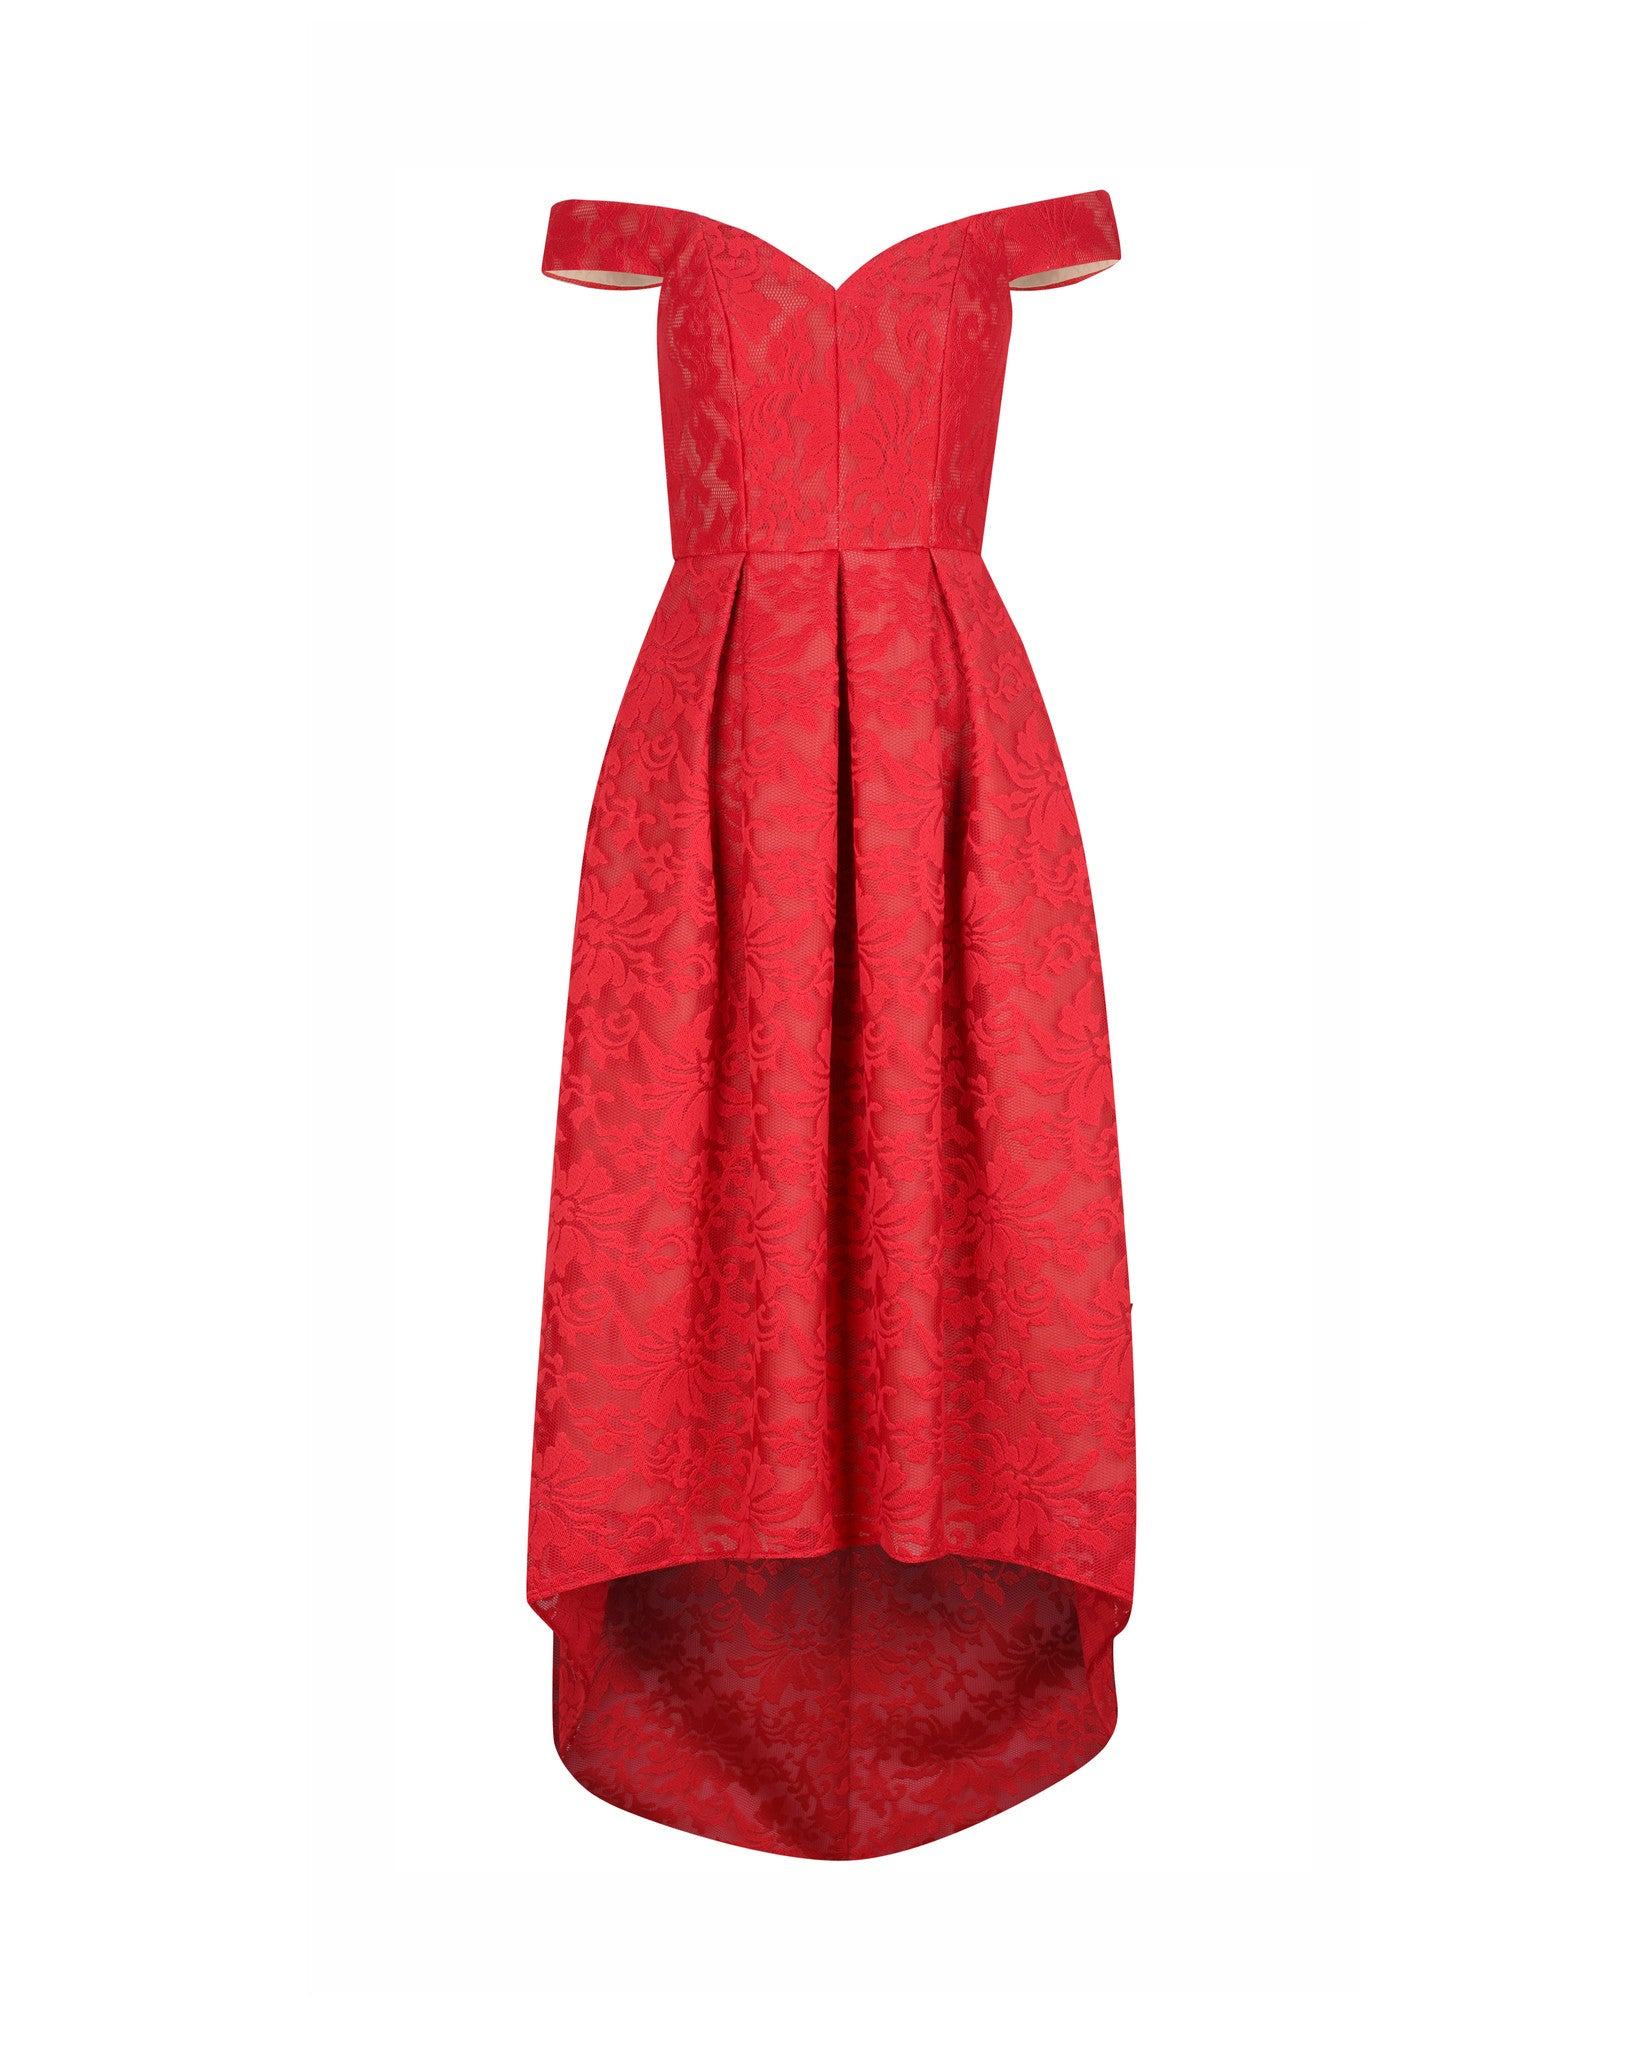 MIA DRESS- SCARLET/NUDE